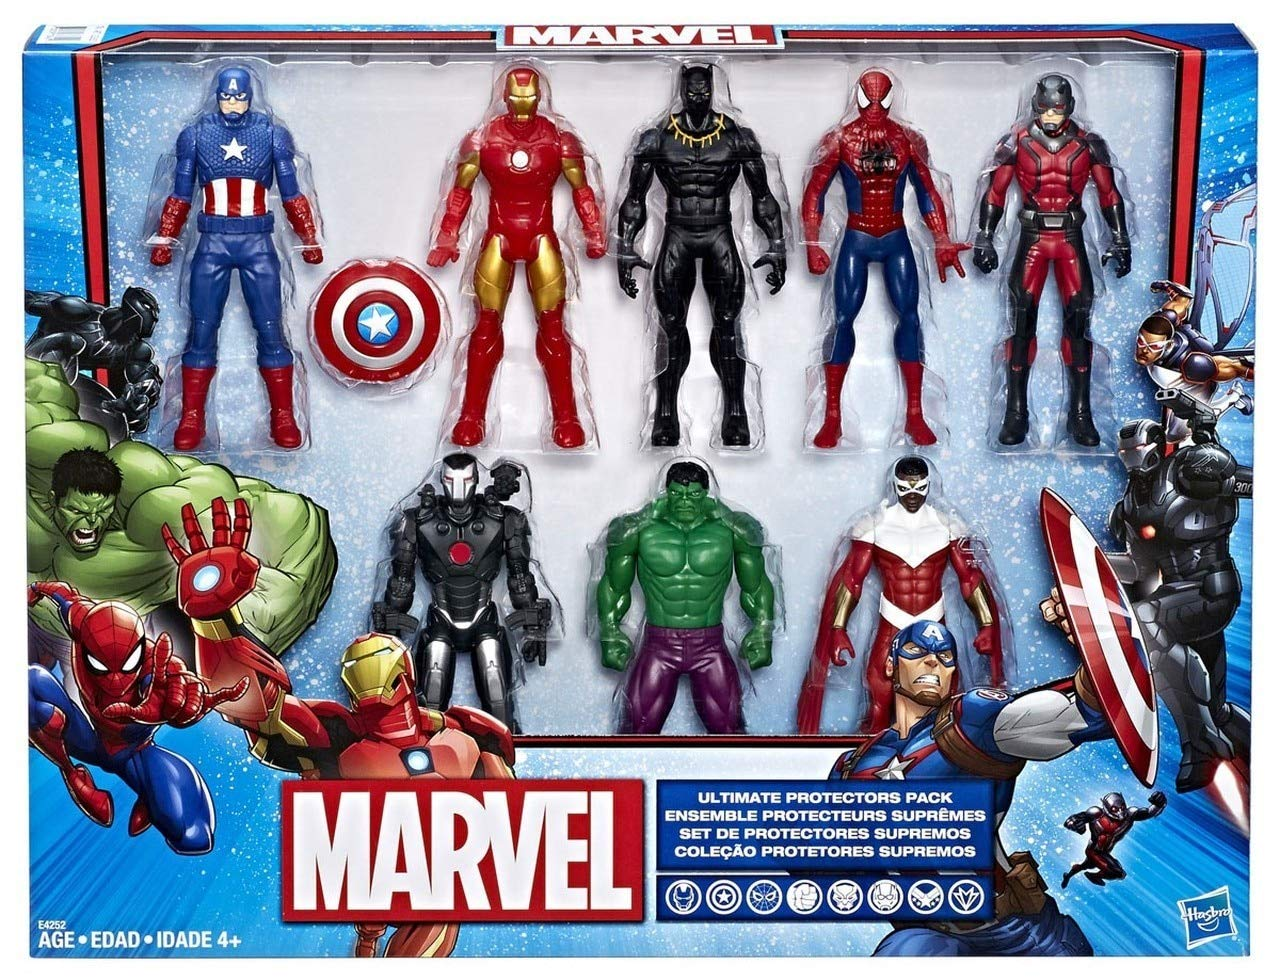 Marvel Avengers Action Figures - Iron Man, Hulk, Black Panther, Captain America, Spider Man, Ant Man, War Machine & Falcon! (8 Action Figures) by Marvel